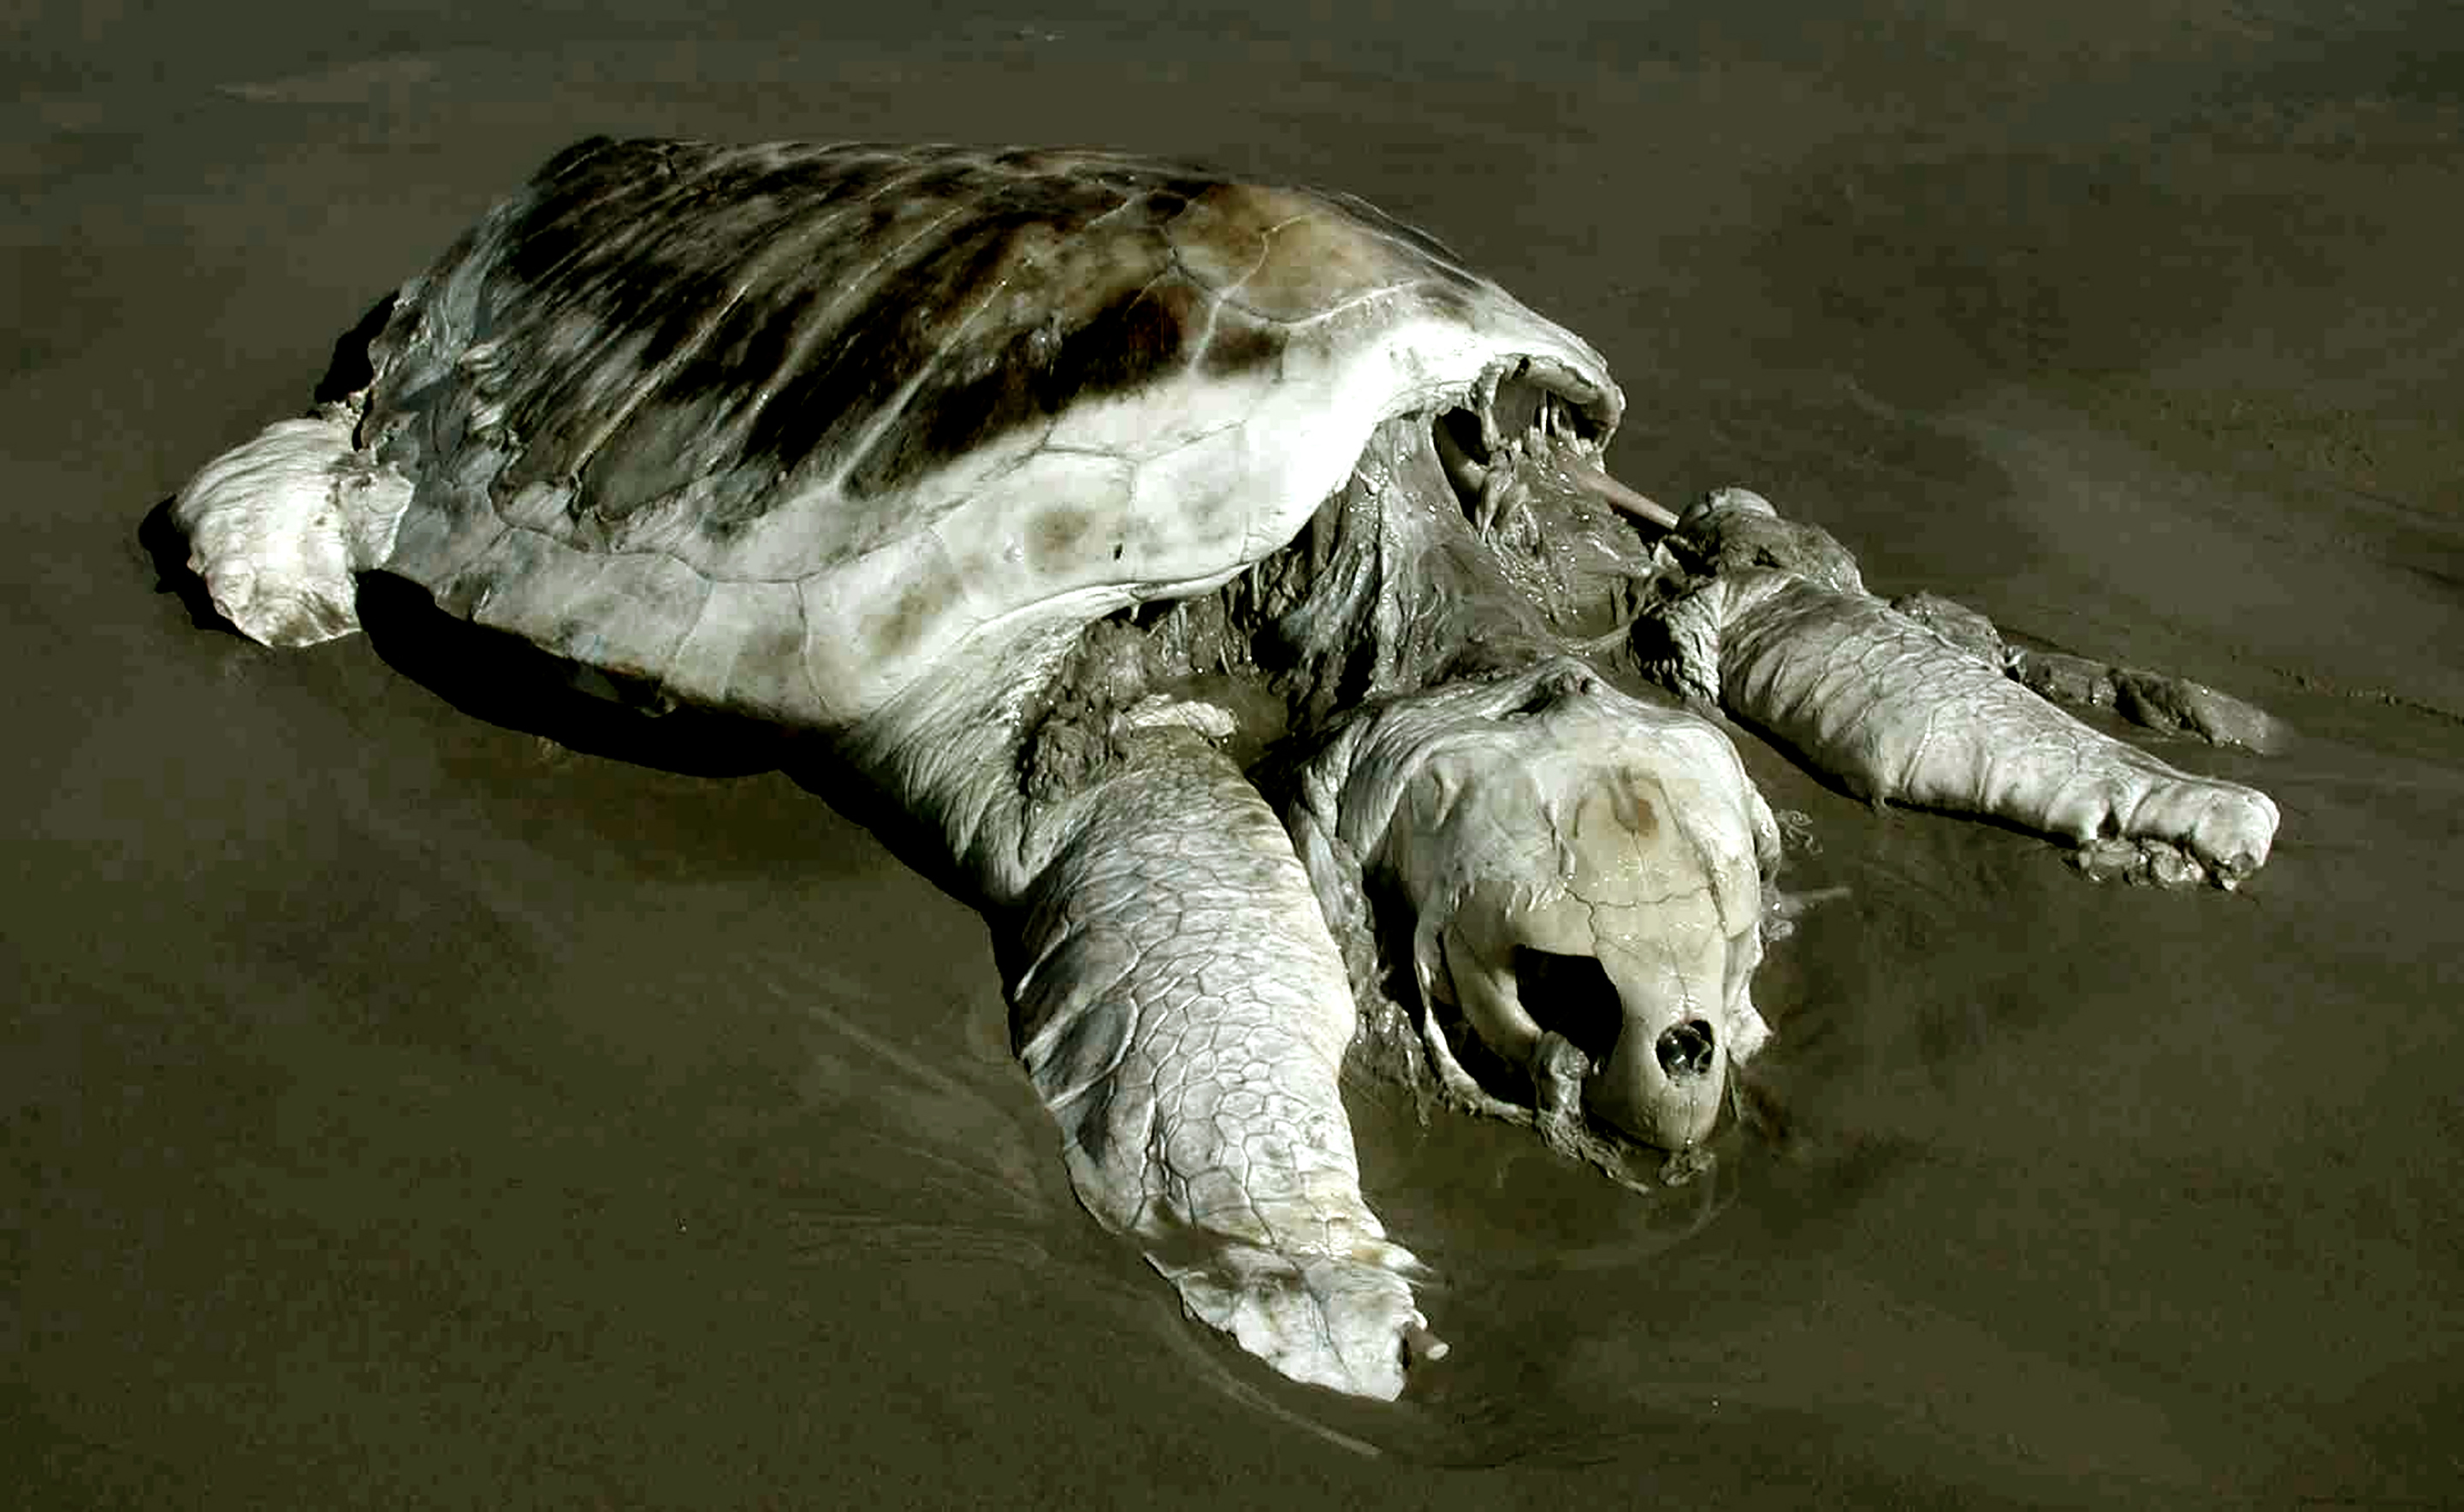 Carcass of a Now Extinct Turtle